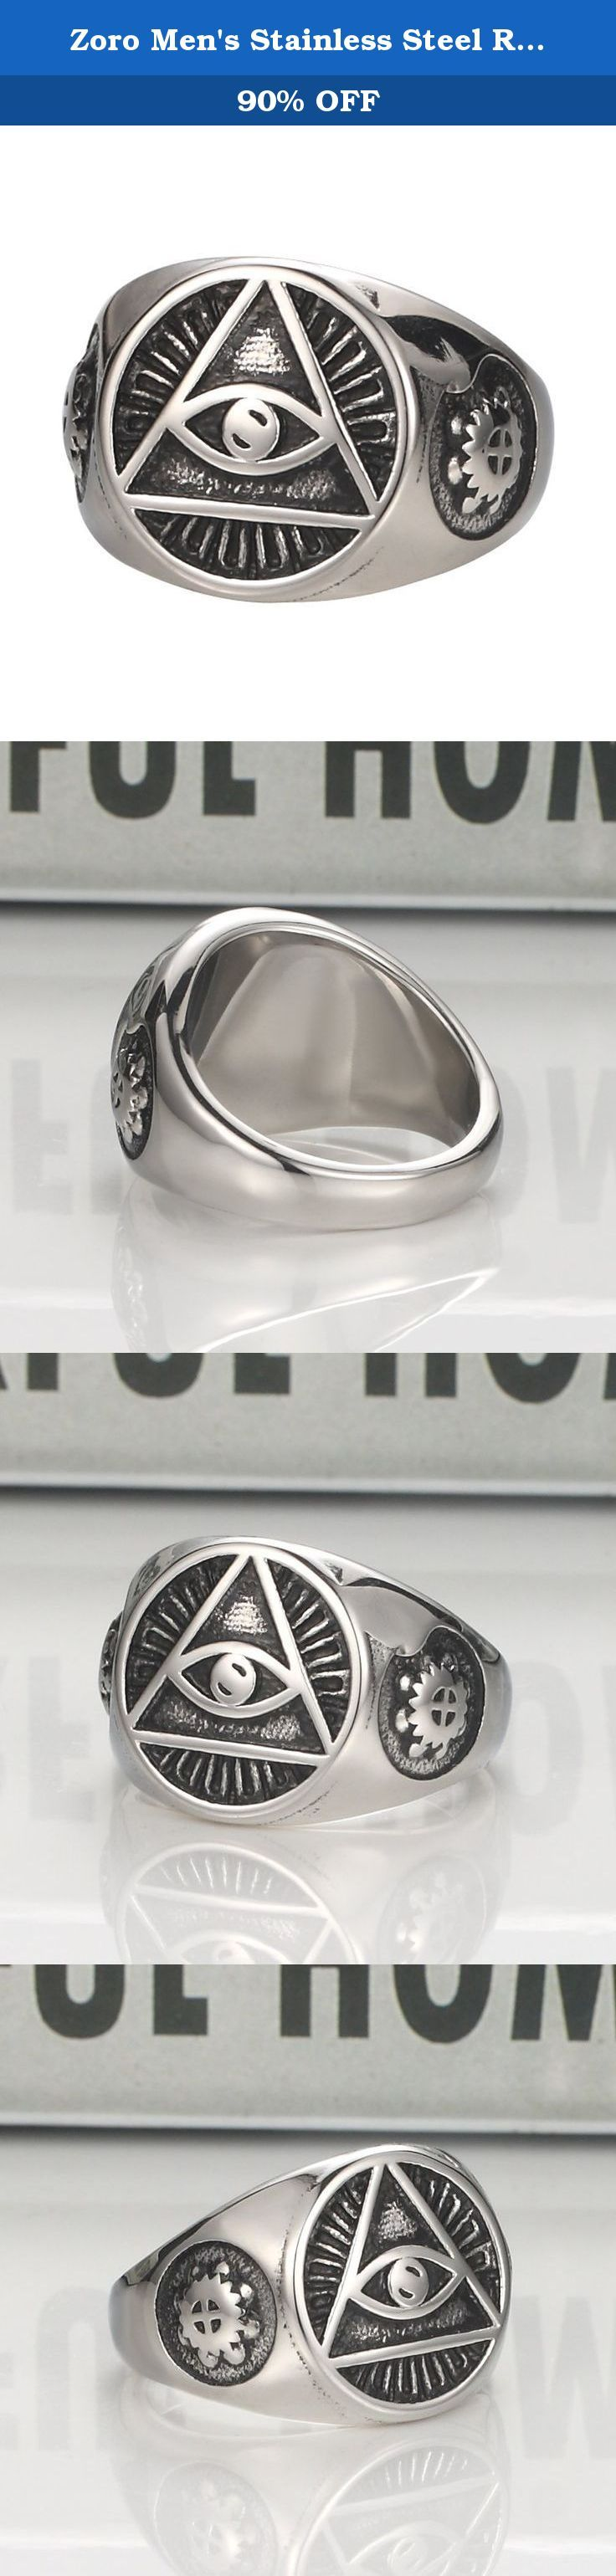 Zoro Men's Stainless Steel Ring Illuminati The All-seeing-eye pyramid/eye symbol Band Silver Black (12). Material: High Quality Titanium Steel,Well Polished Finish. Color: Silver Black. Availabe in Different Sizes, Perfect Gifts for Your Friends,and Familry. A handsome and masculine stainless steel ring. Dimensions:16-16mm.